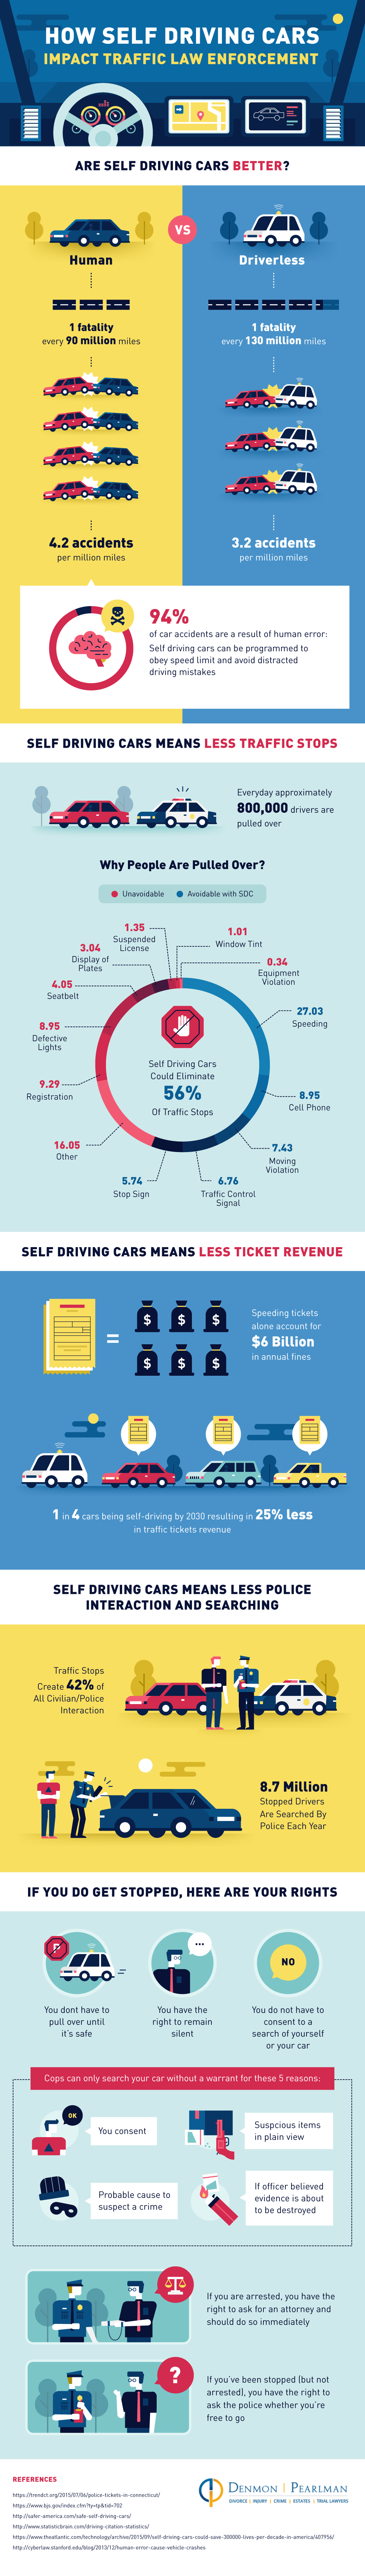 Self Driving Cars Impact on Traffic Law Enforcement - Infographic